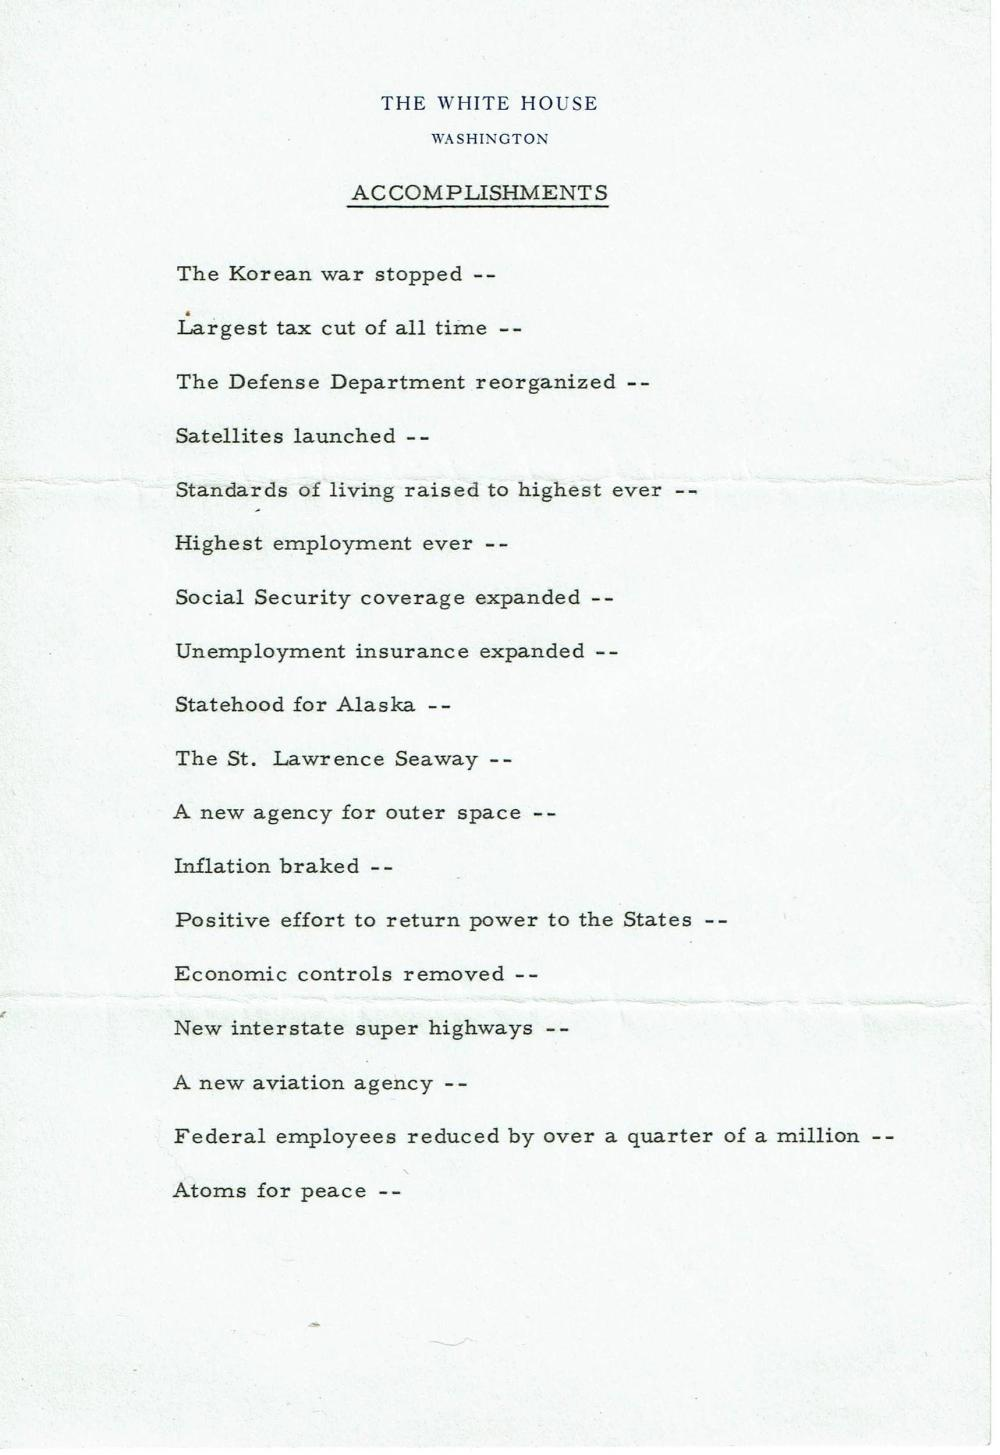 Eisenhower as President Fantastic 4 Page Letter on his Record, Ex-Forbes